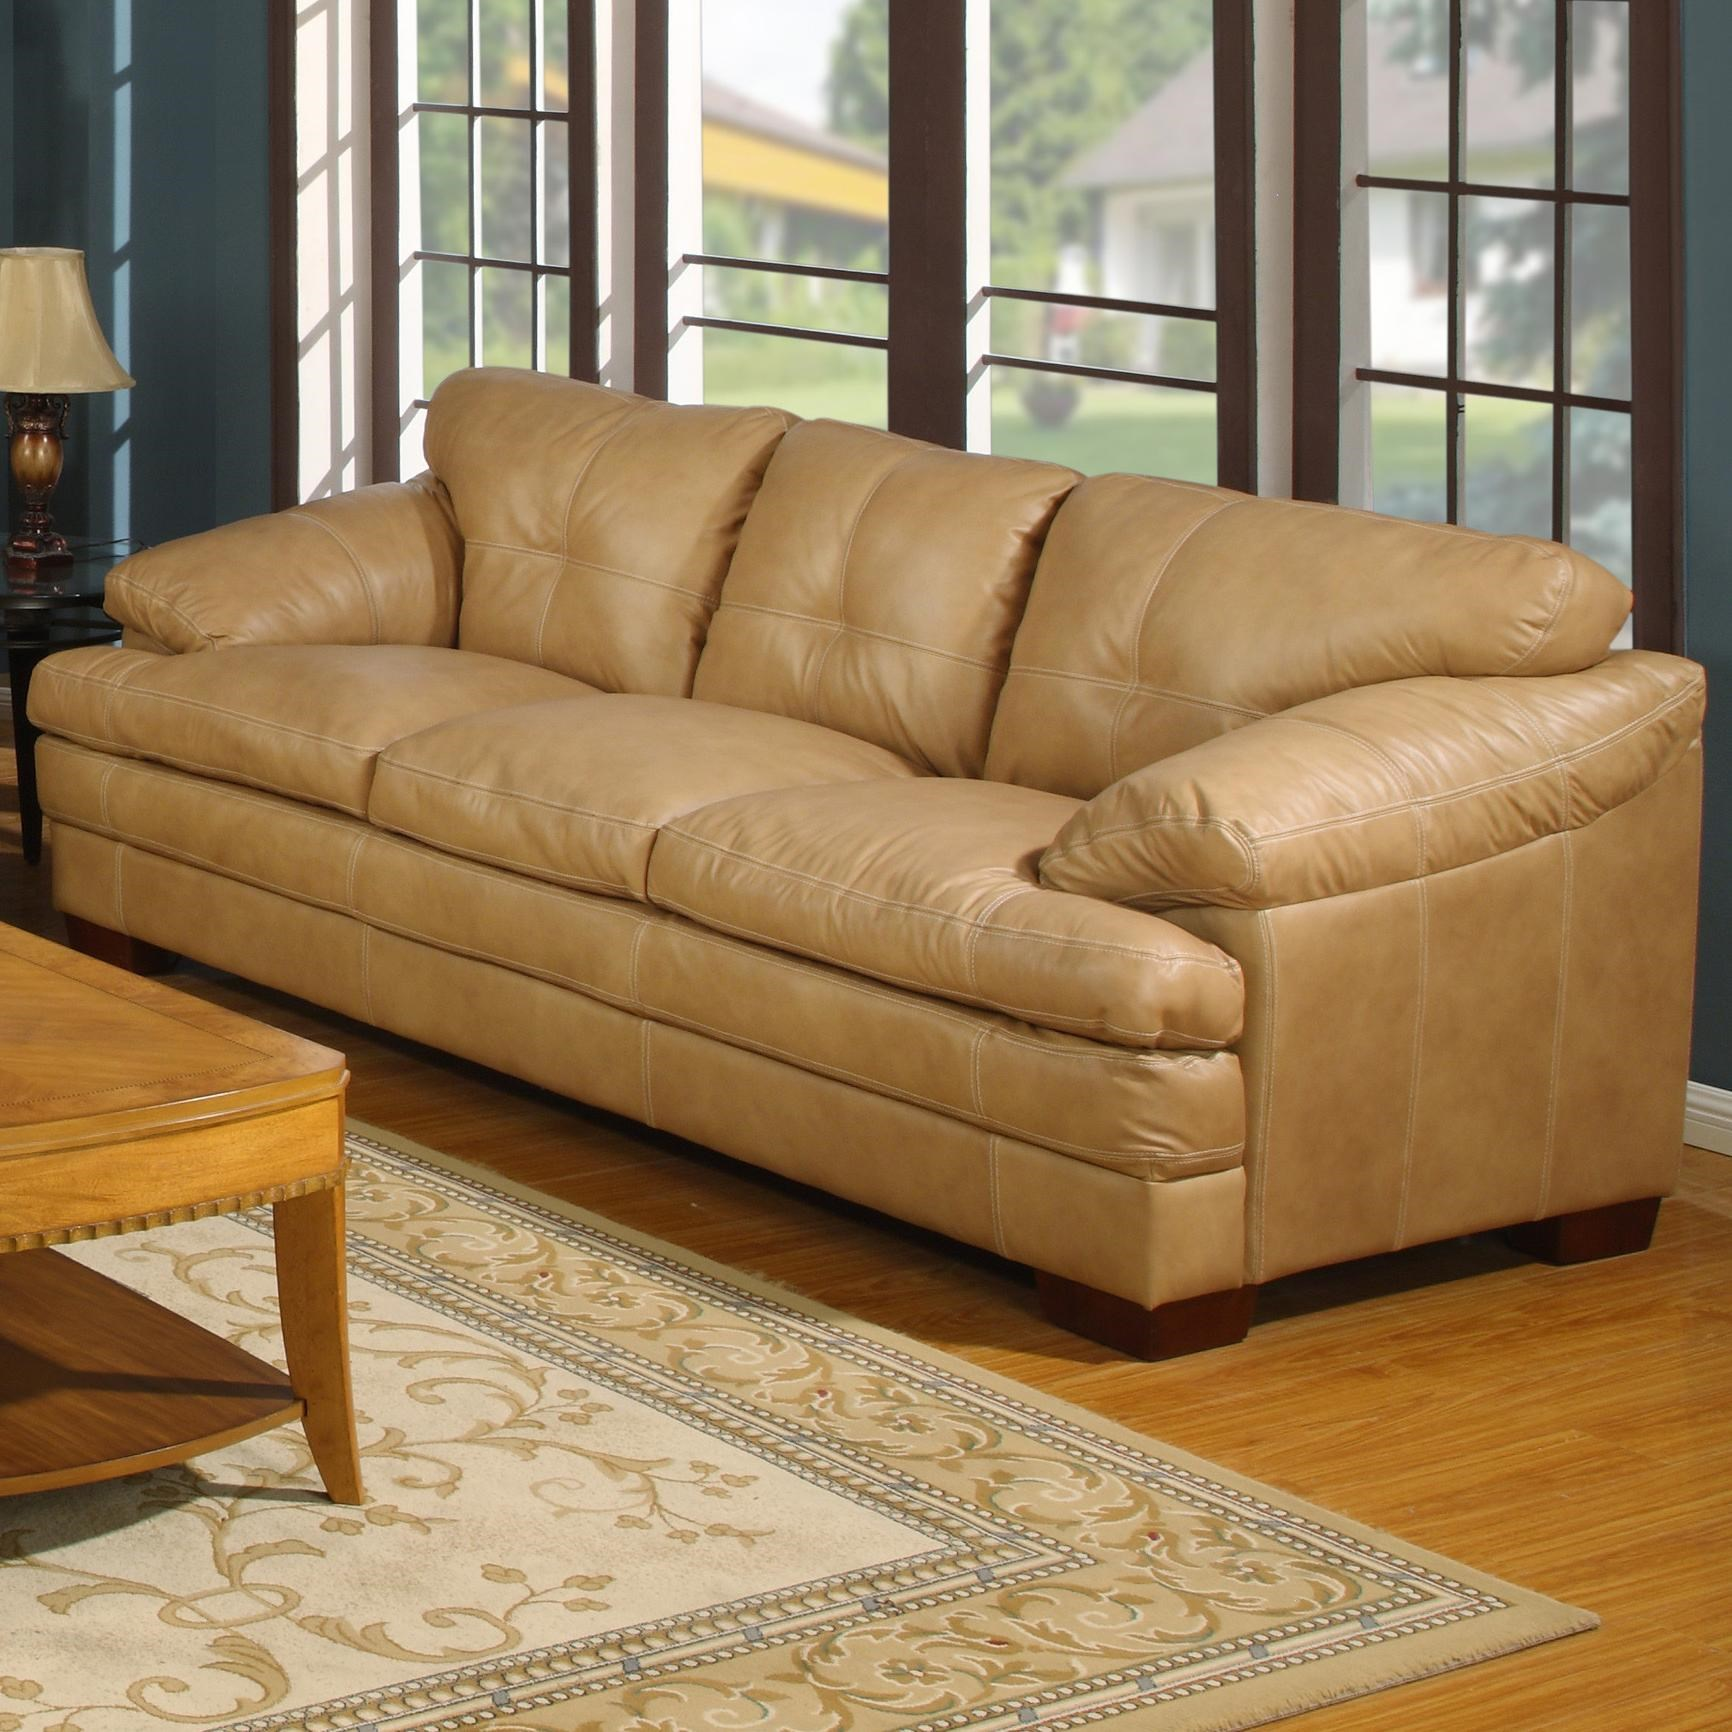 Primo International Mayfair Sofa Nassau Furniture